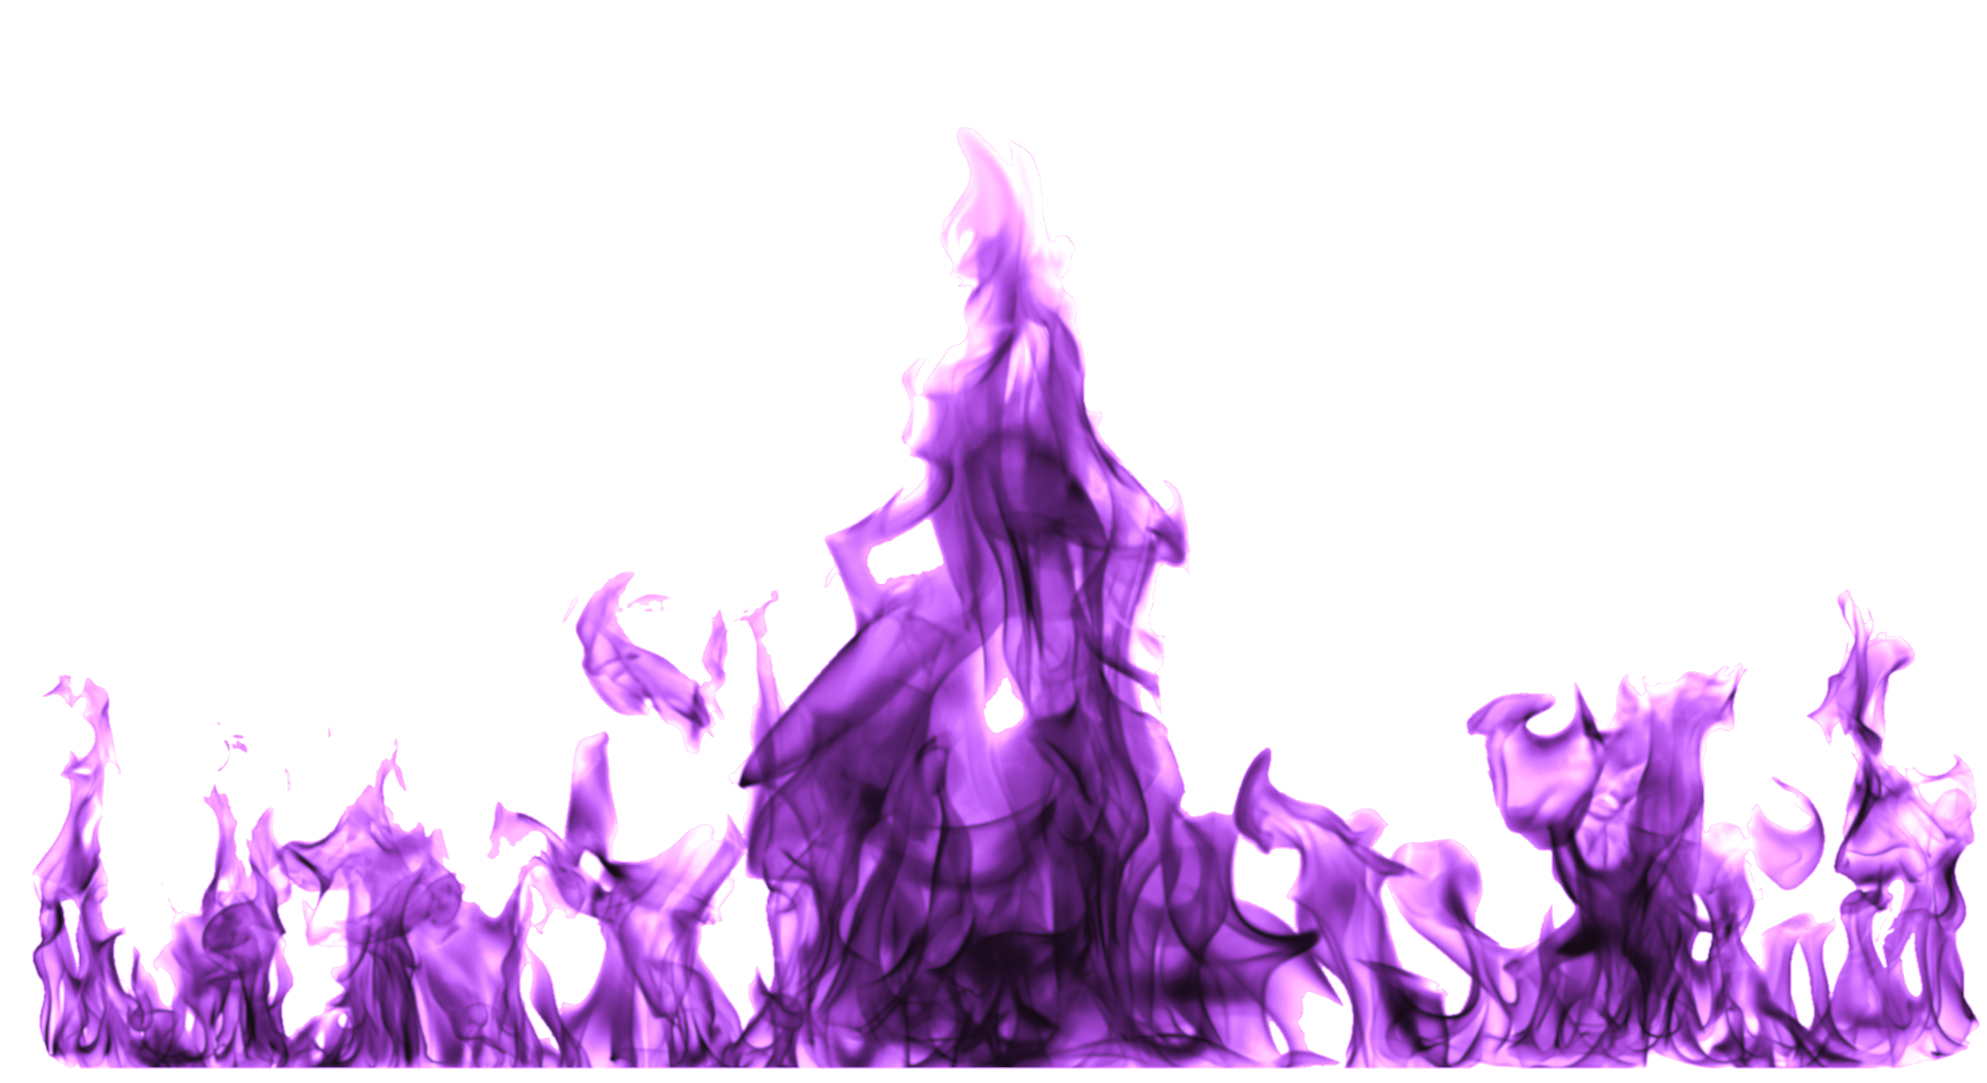 Violet Flame Prayer: Prayer of Forgiveness | Channeling